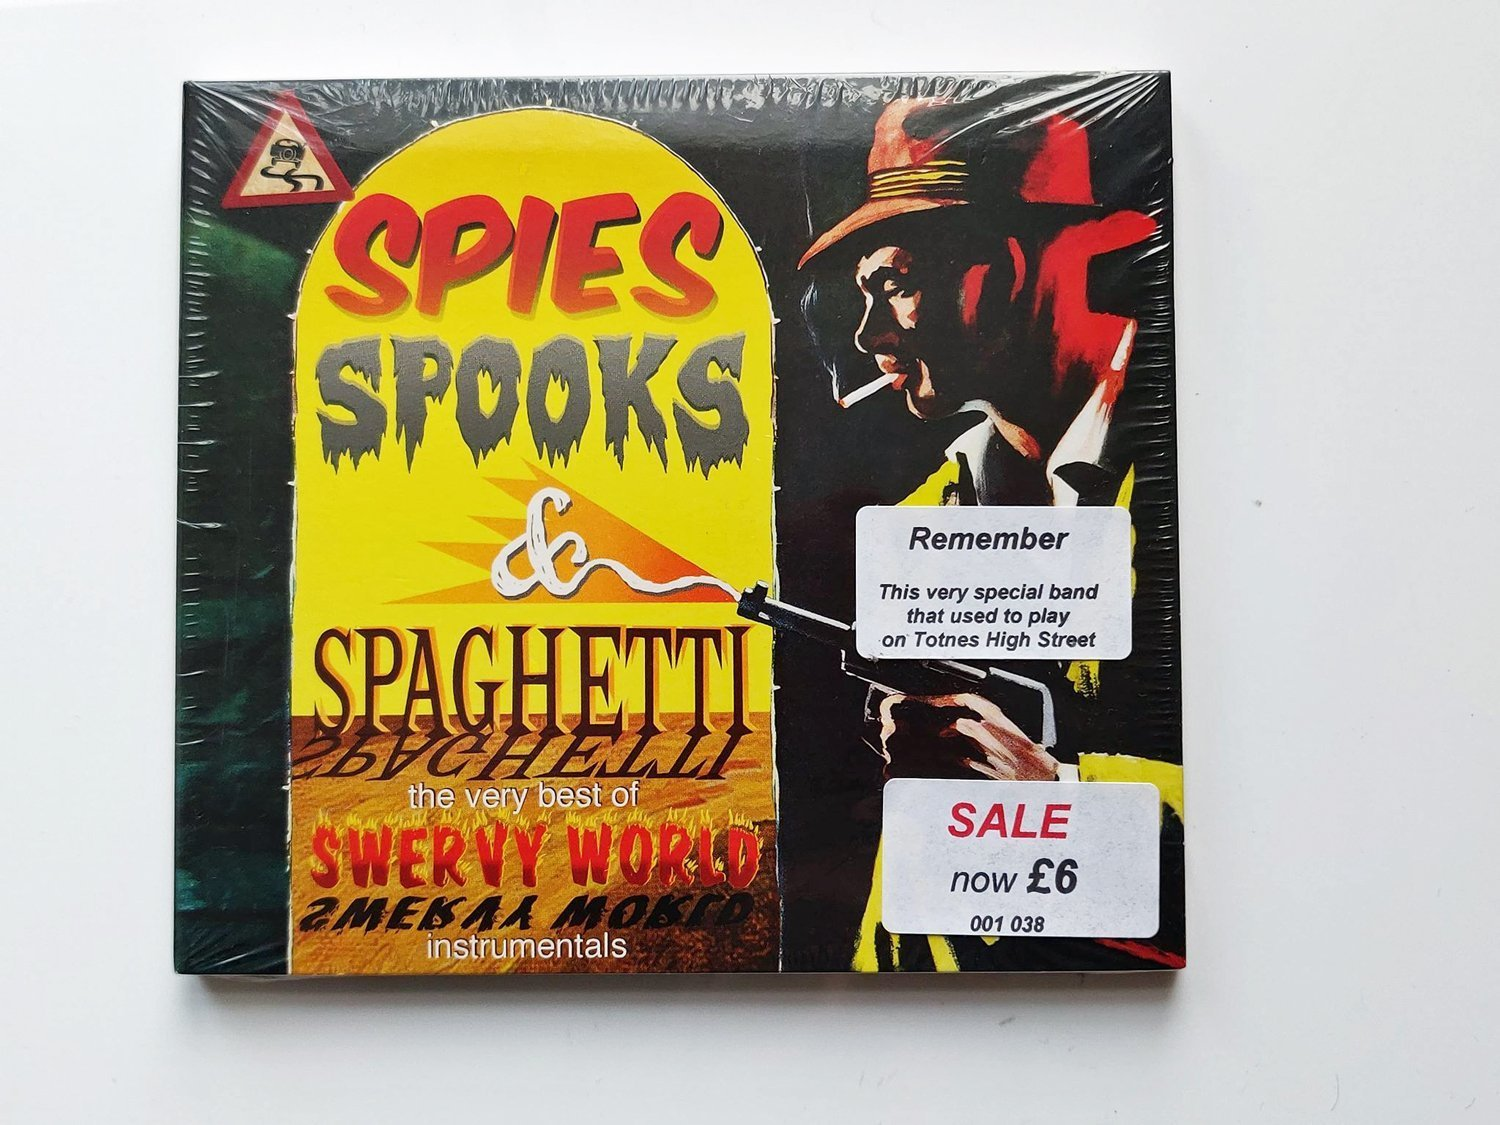 Spies and Spooks by Swervy World